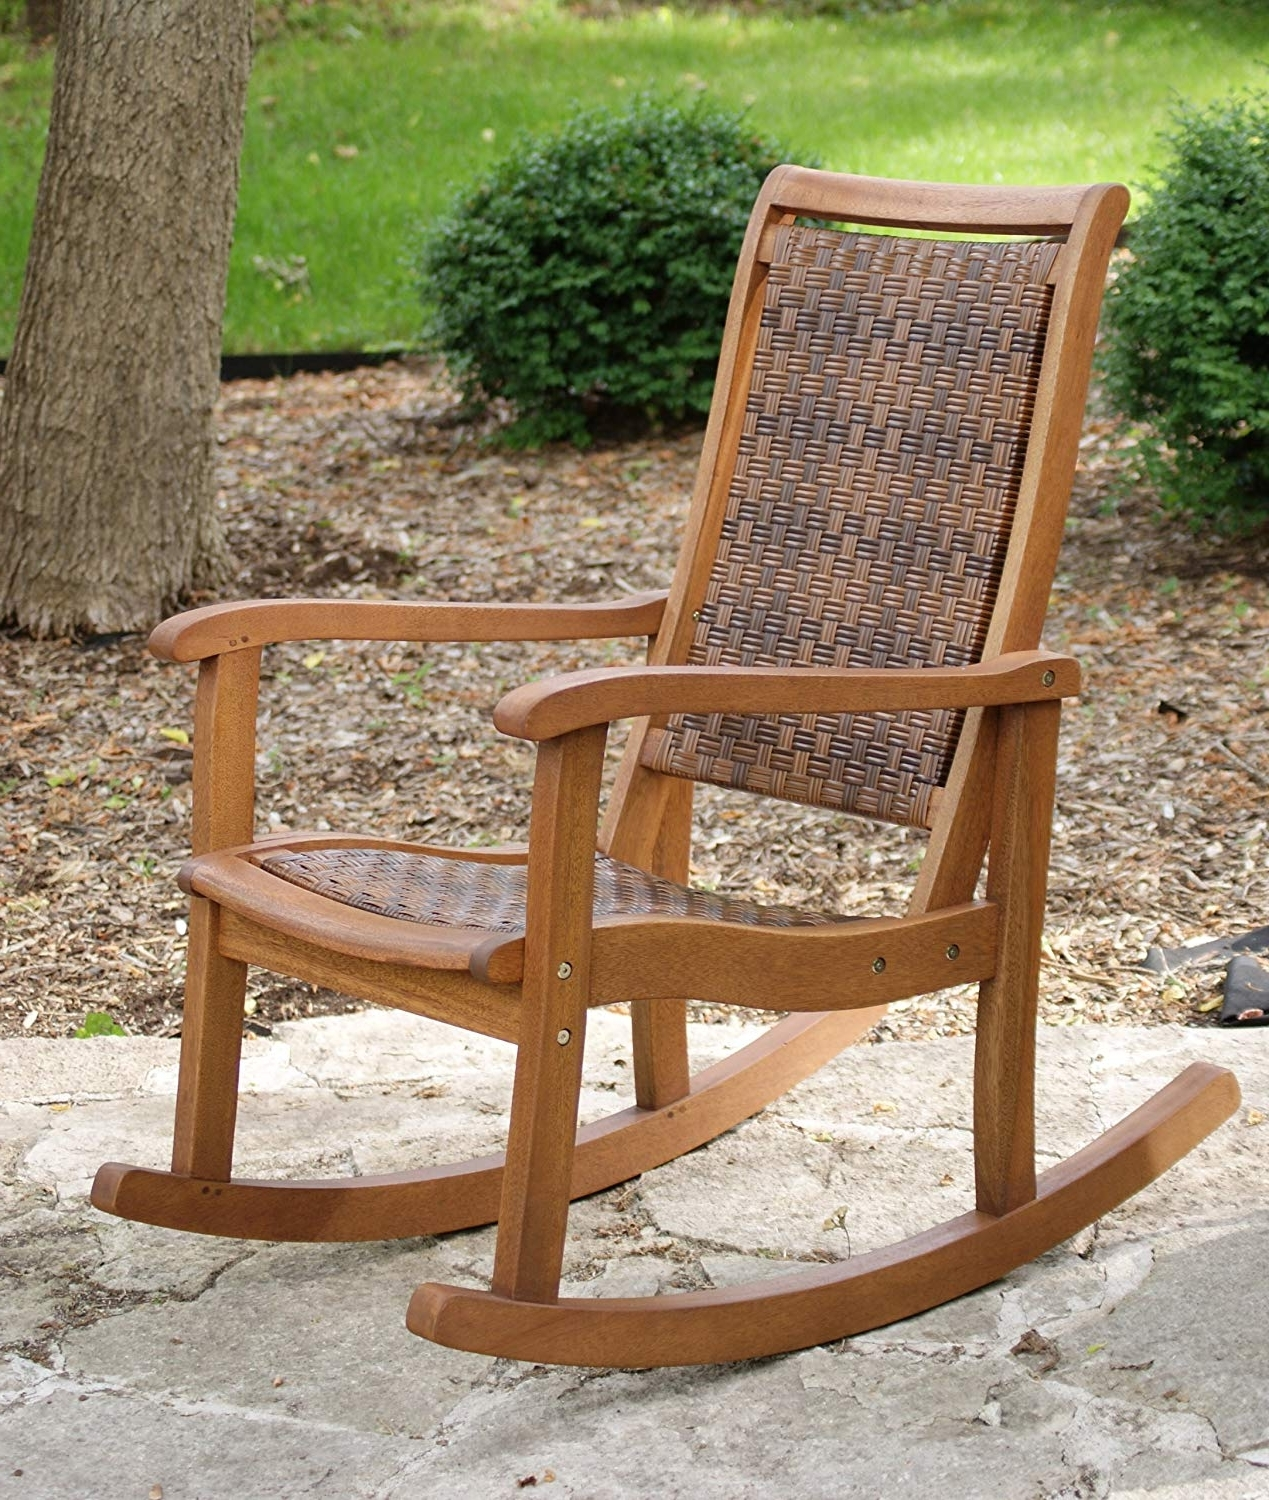 Outdoor Vinyl Rocking Chairs With Widely Used Amazon : Outdoor Interiors 21095Rc All Weather Wicker Mocha And (View 3 of 15)